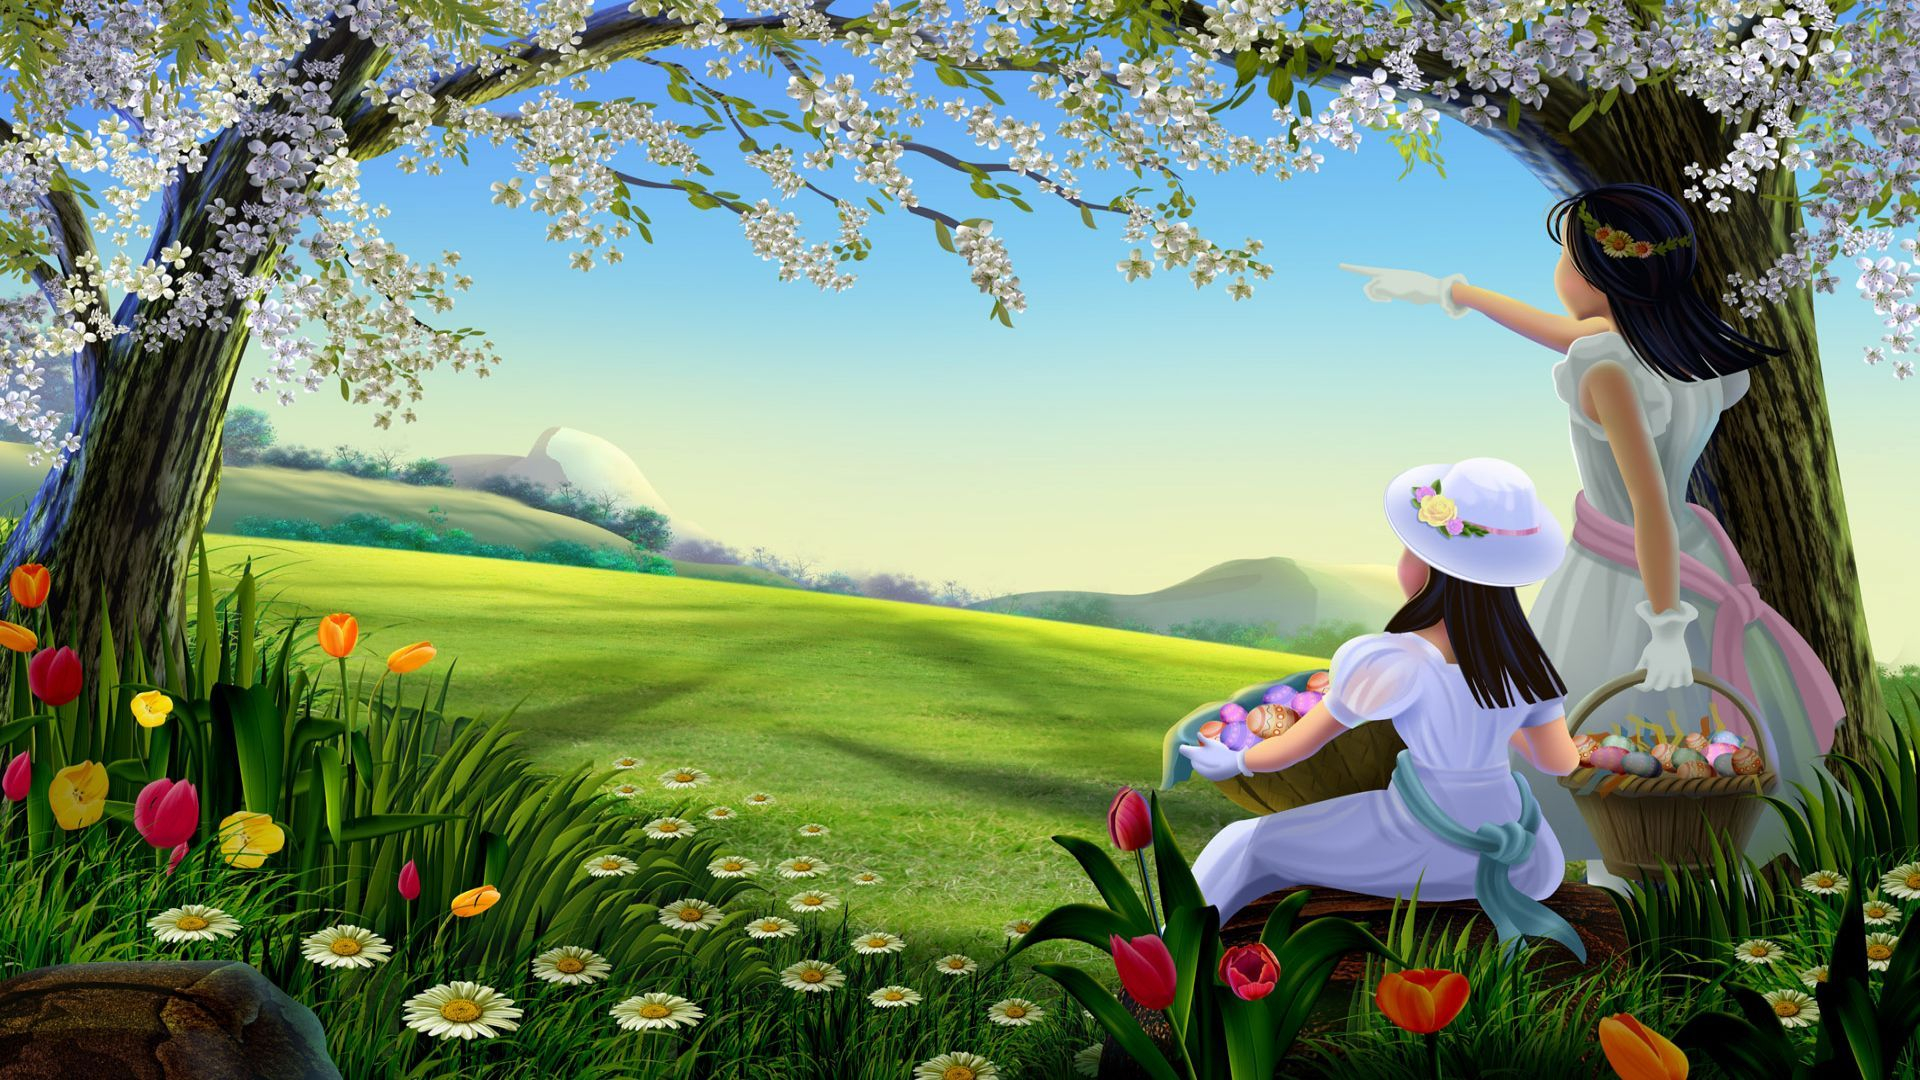 nature wallpaper hd,people in nature,natural landscape,nature,spring,meadow